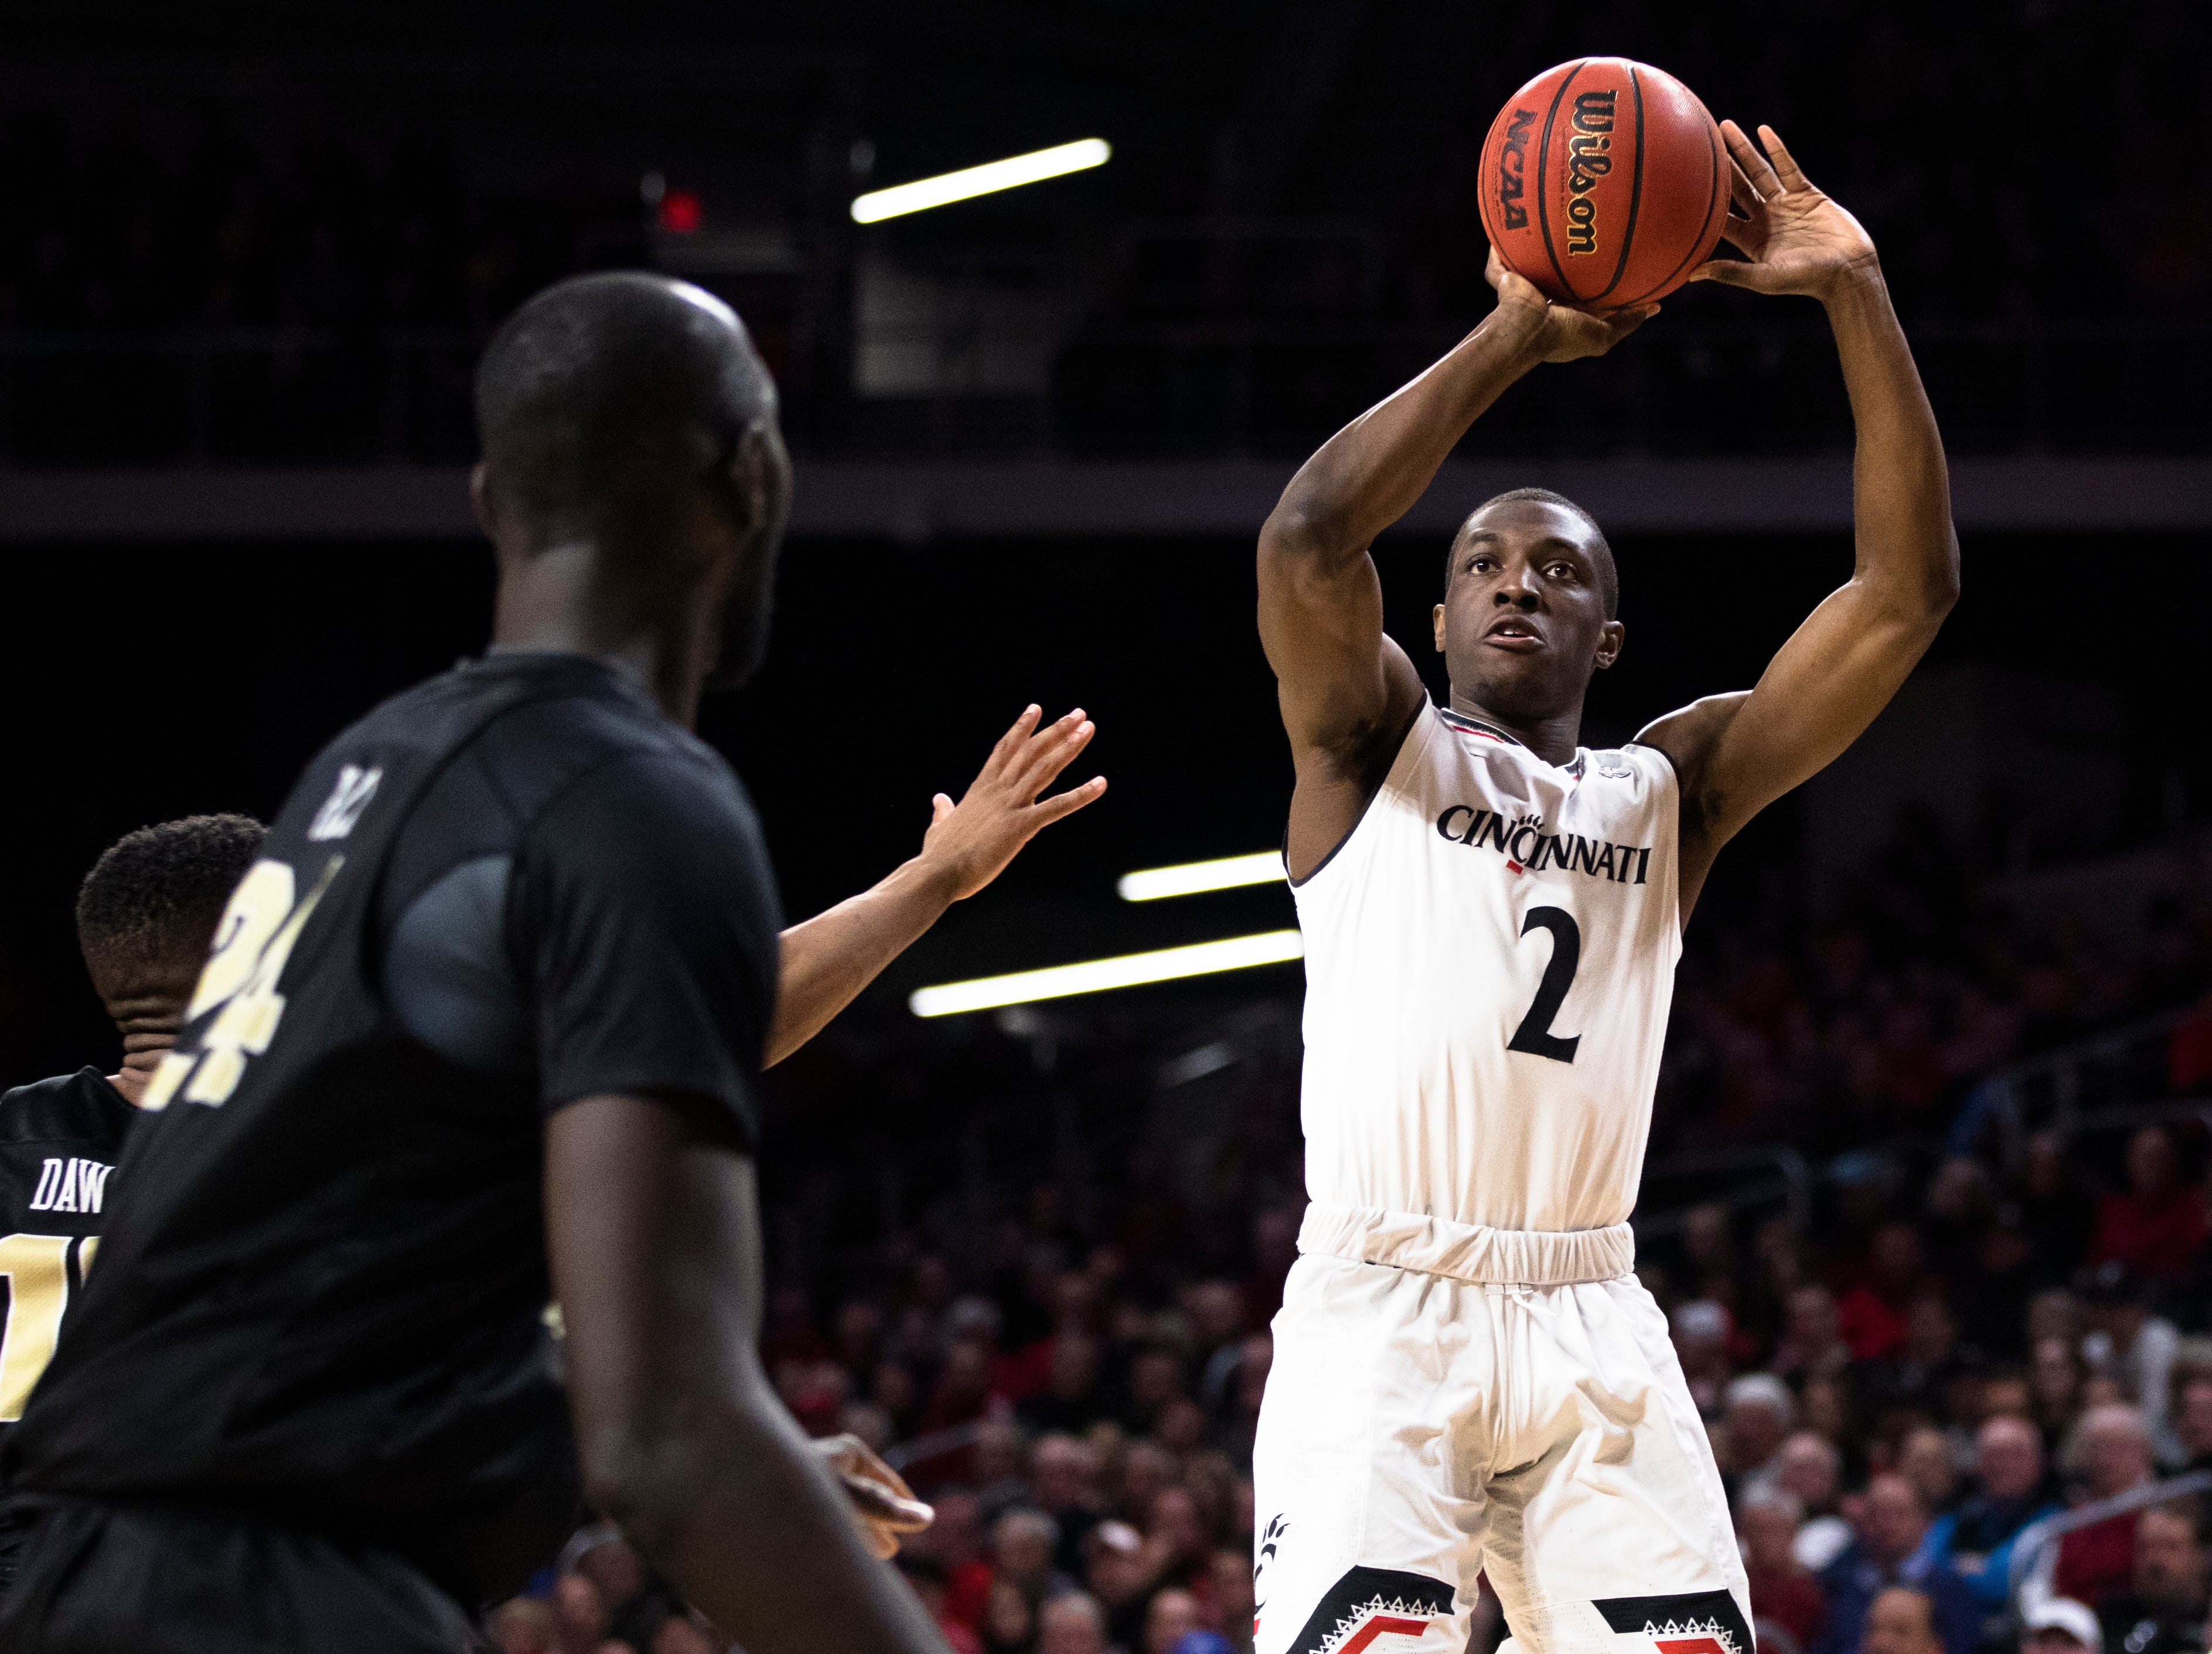 Cincinnati Bearcats guard Keith Williams (2) shoots as UCF Knights guard Dayon Griffin (10) in the first half of the NCAA men's basketball game between Cincinnati Bearcats and UCF Knights on Thursday, Feb. 21, 2019, at Fifth Third Arena in Cincinnati.